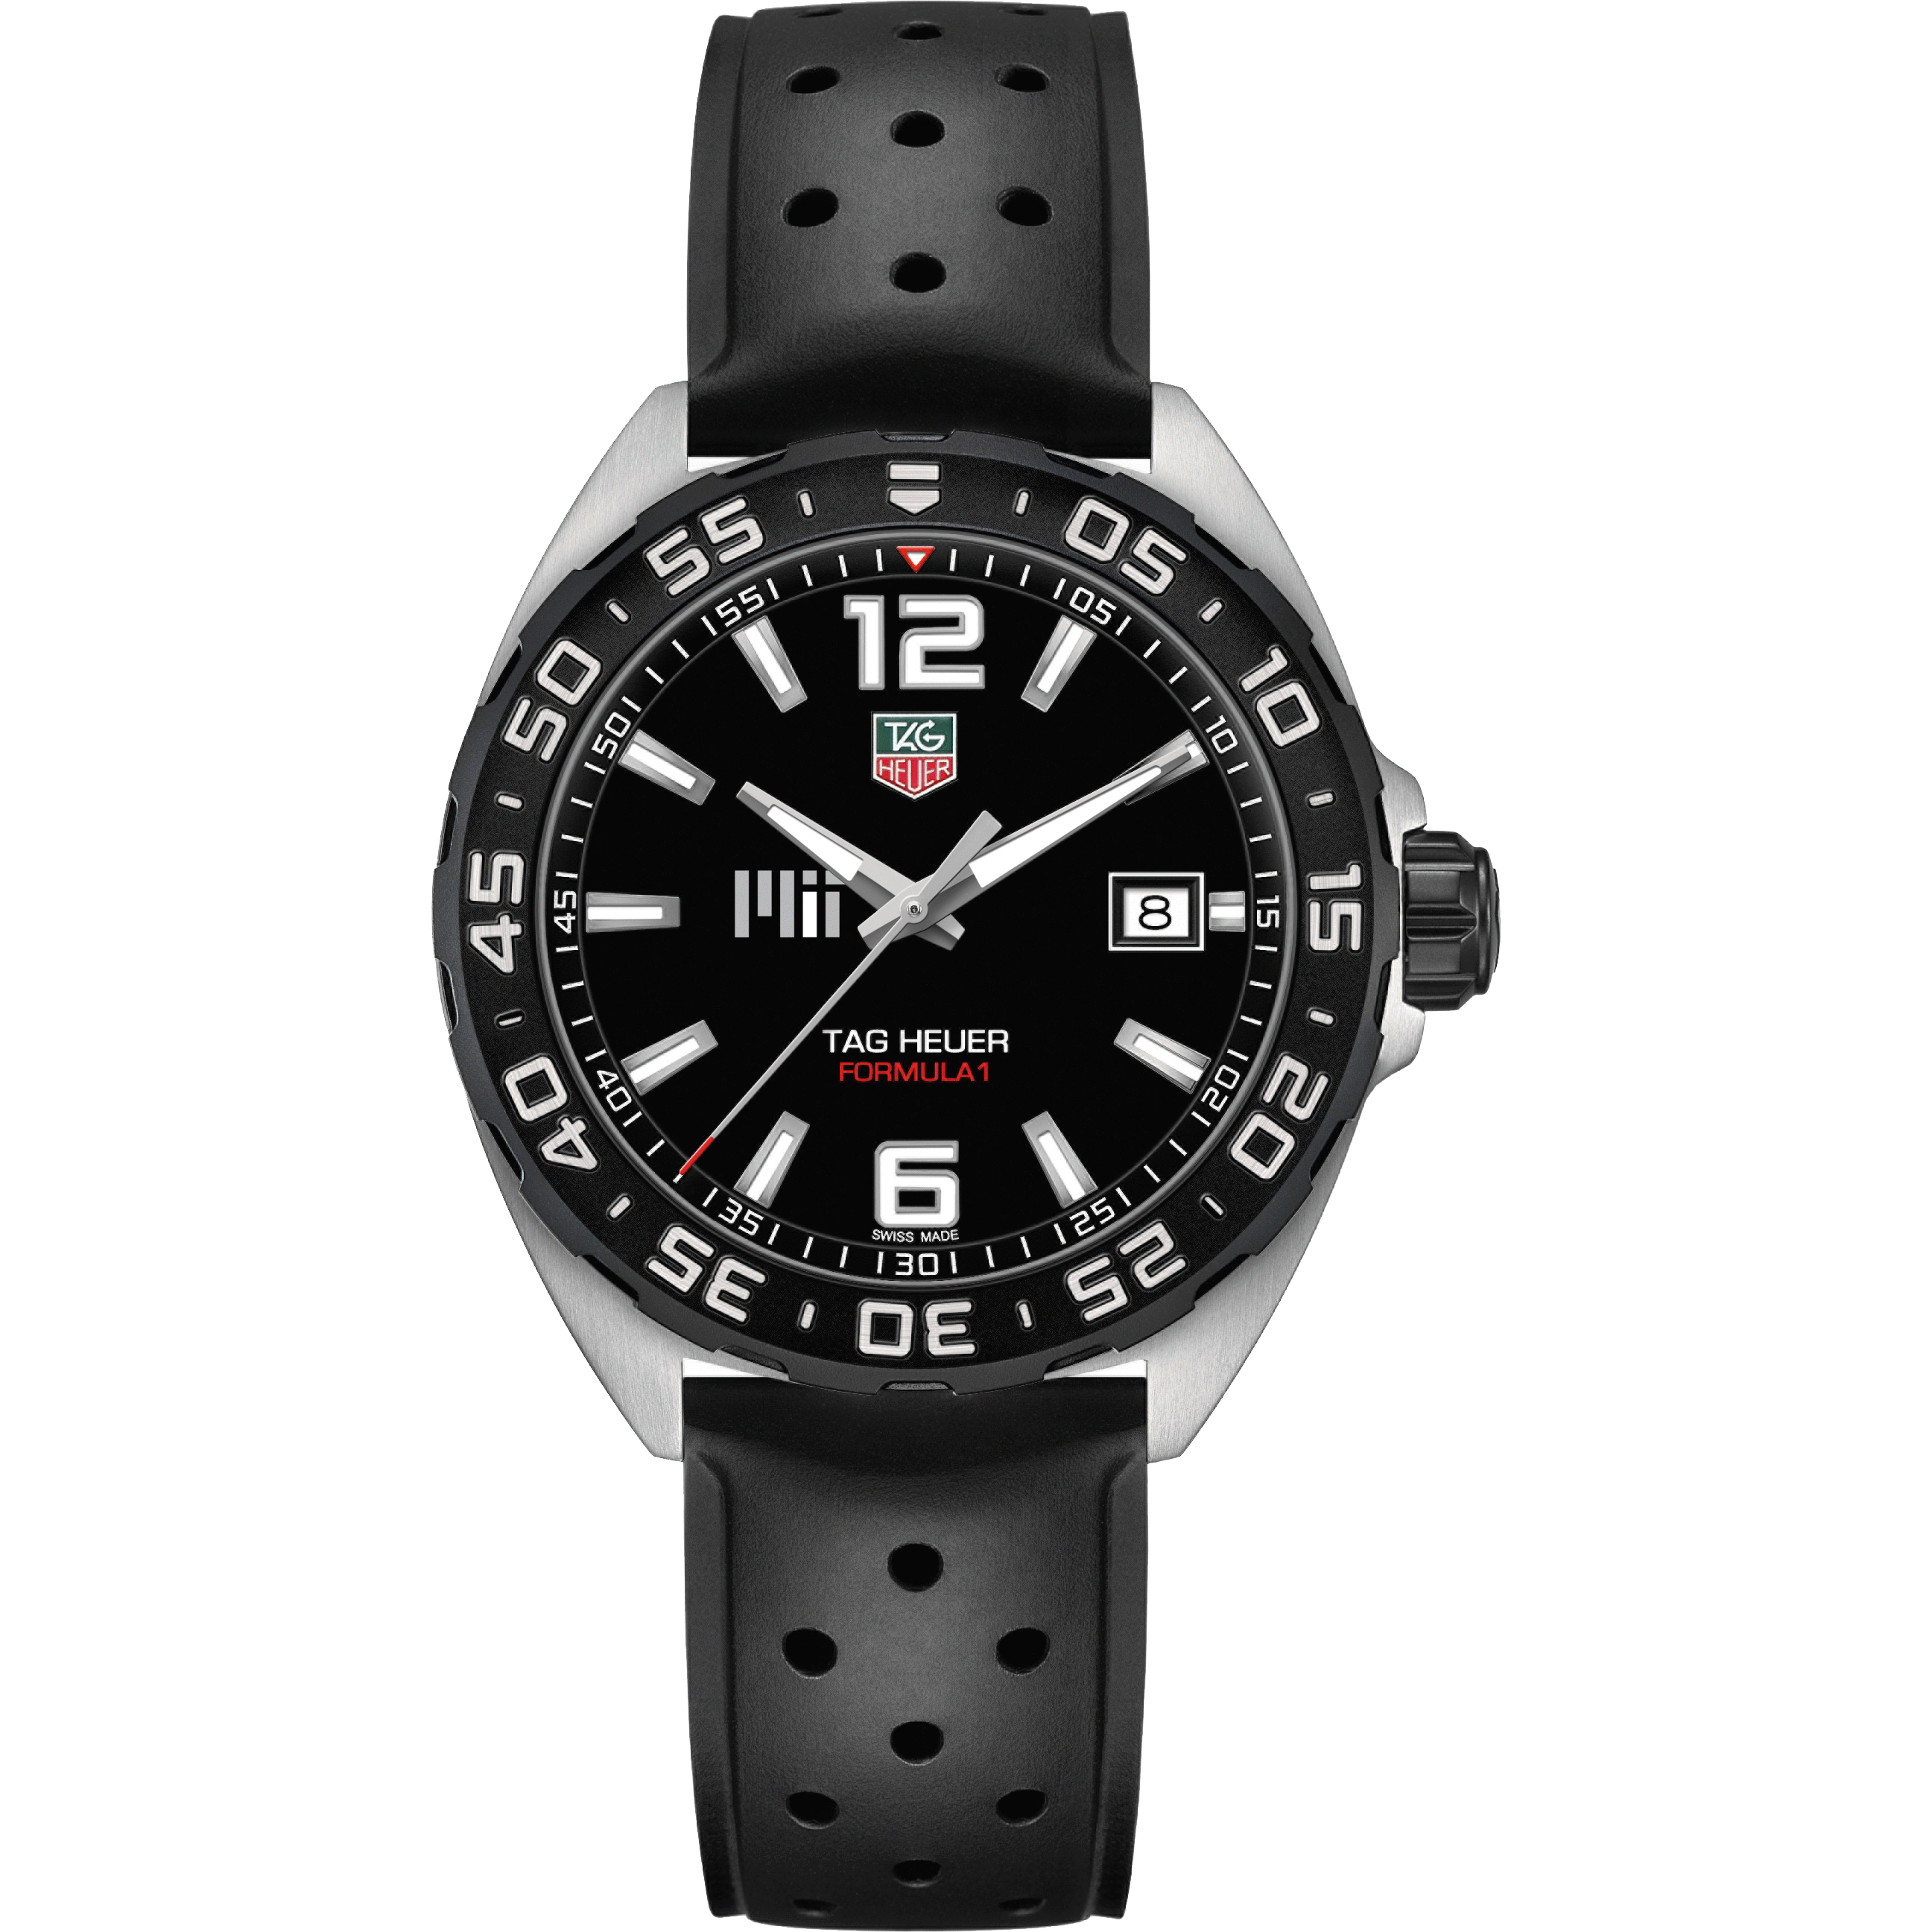 MIT Men's TAG Heuer Formula 1 with Black Dial - Image 2